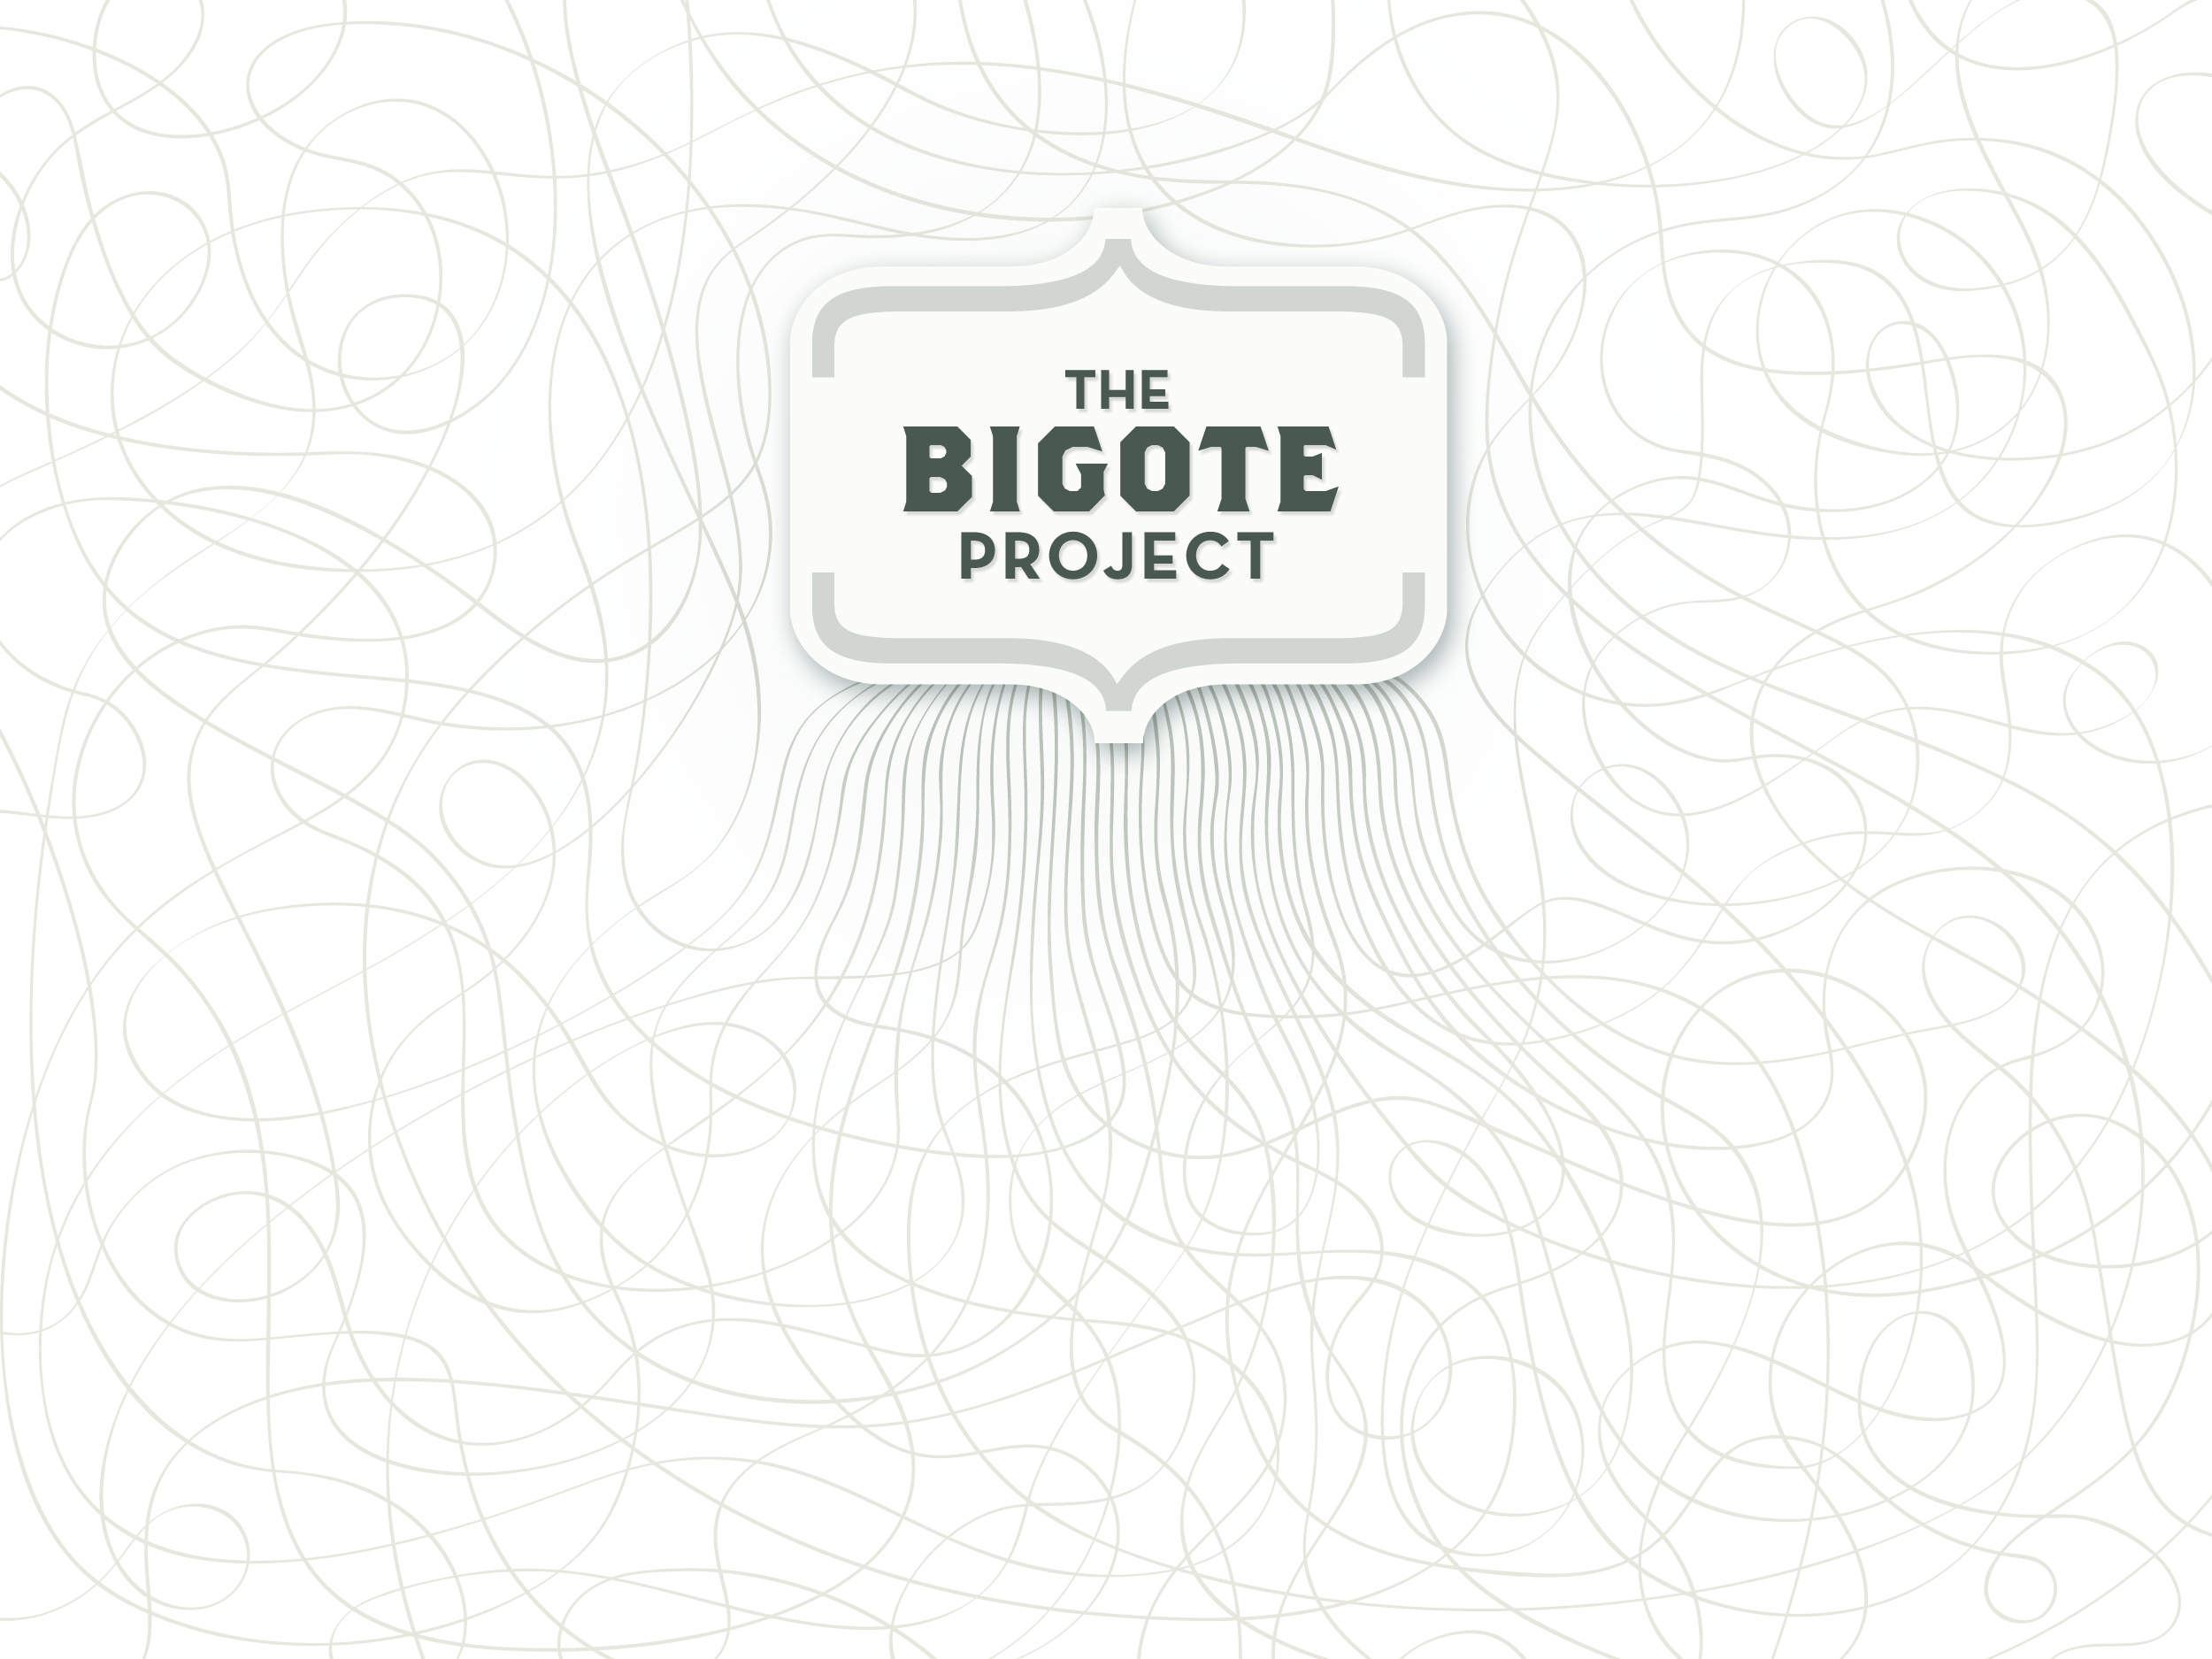 The Bigote Proyect